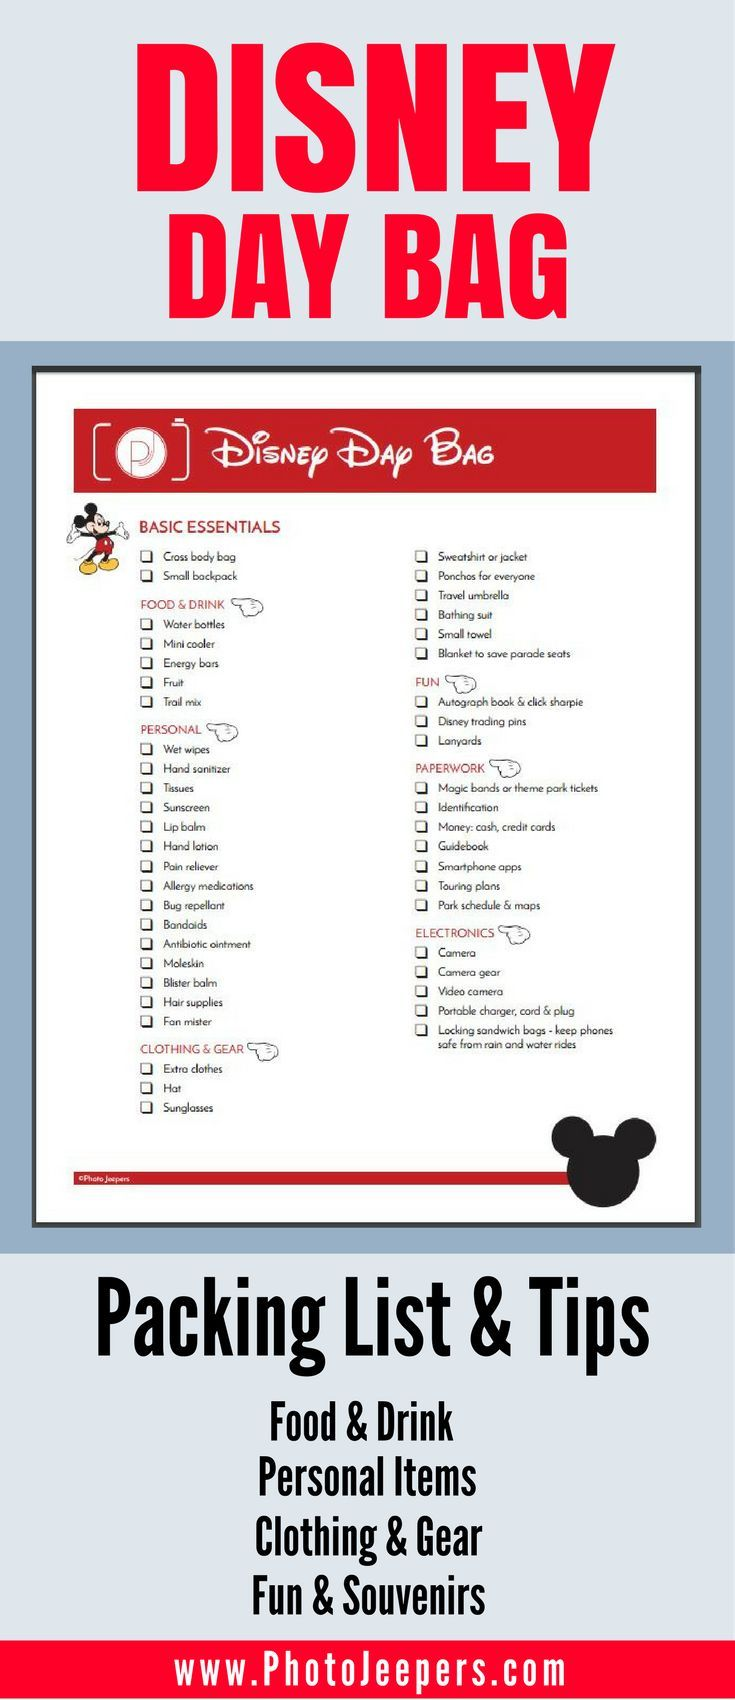 If you're planning a trip to Disney, you'll want to check out this Disney packing list first. It has everything you need to bring with you inside the Disney park including things to pack for kids. This packing list will be a lifesaver for Disney or any amusement park you may travel to this year. It includes items and tips for food & drink, clothing & gear, personal items and budget-friendly souvenirs and things to keep kids happy during the day. Make sure you save this to your Disney board.